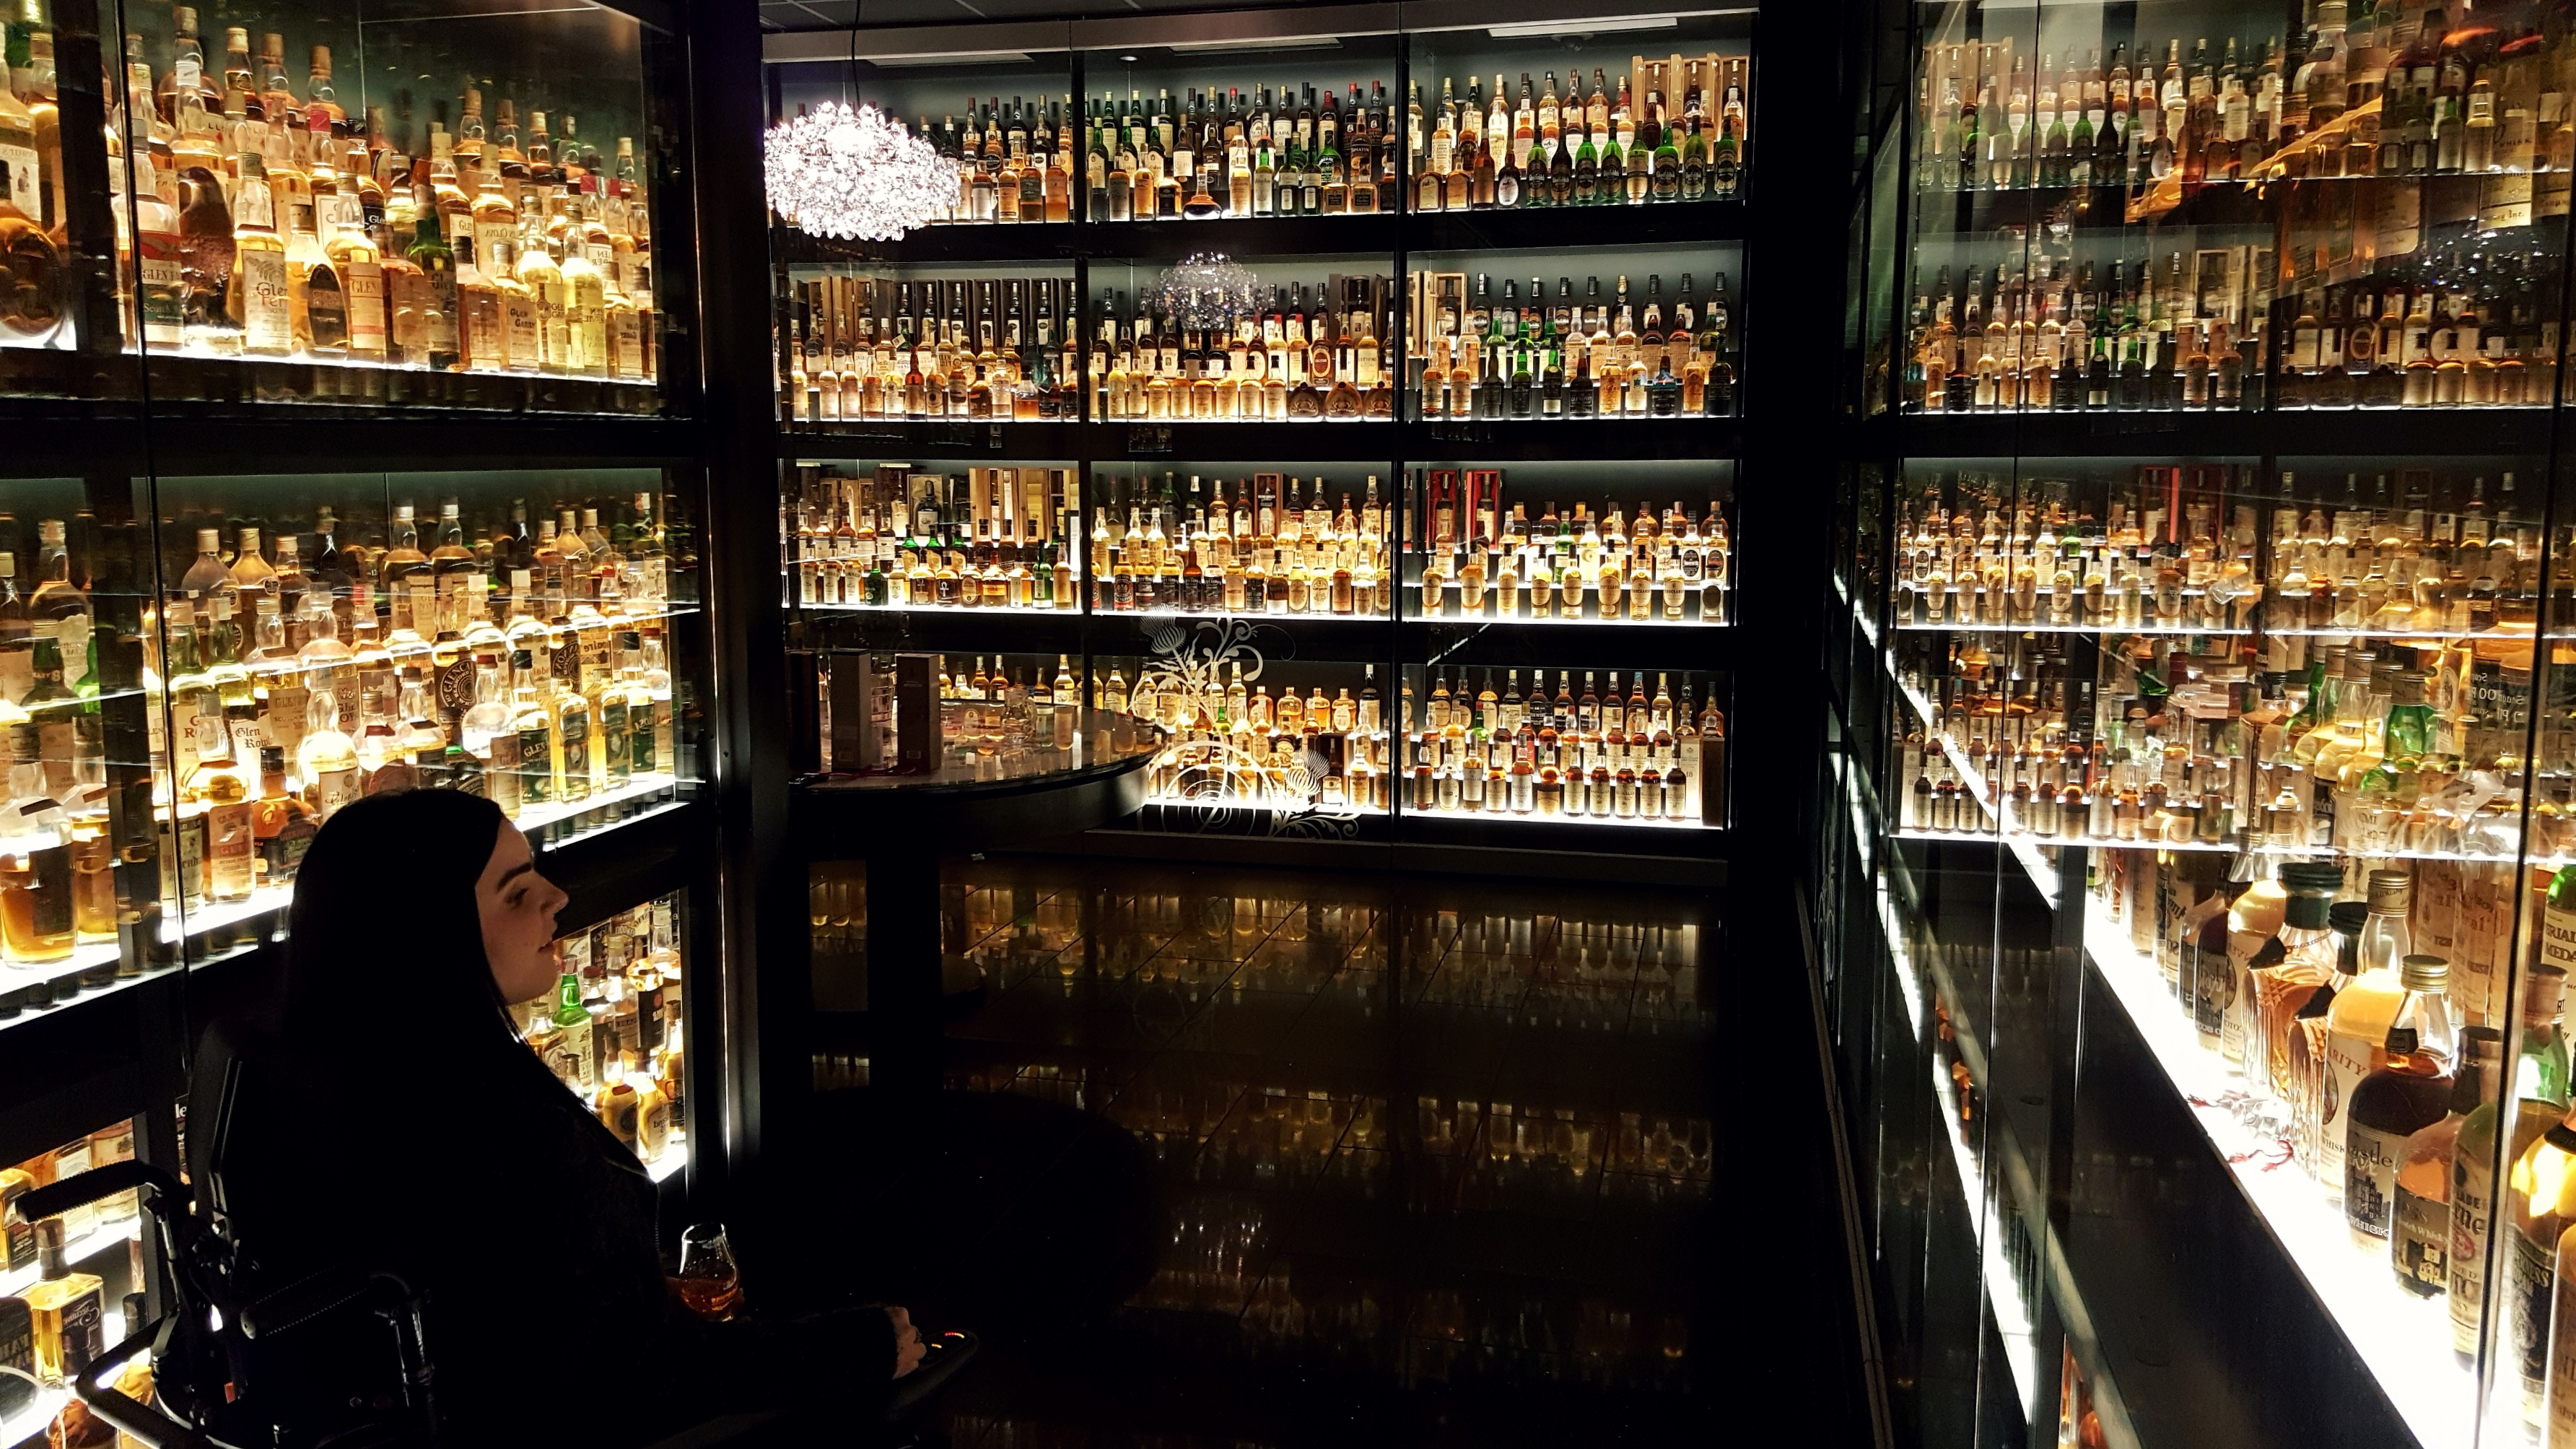 Emma inside The Diageo Claive Vidiz Scotch whisky collection at The Scotch Whisky Experience Edinburgh